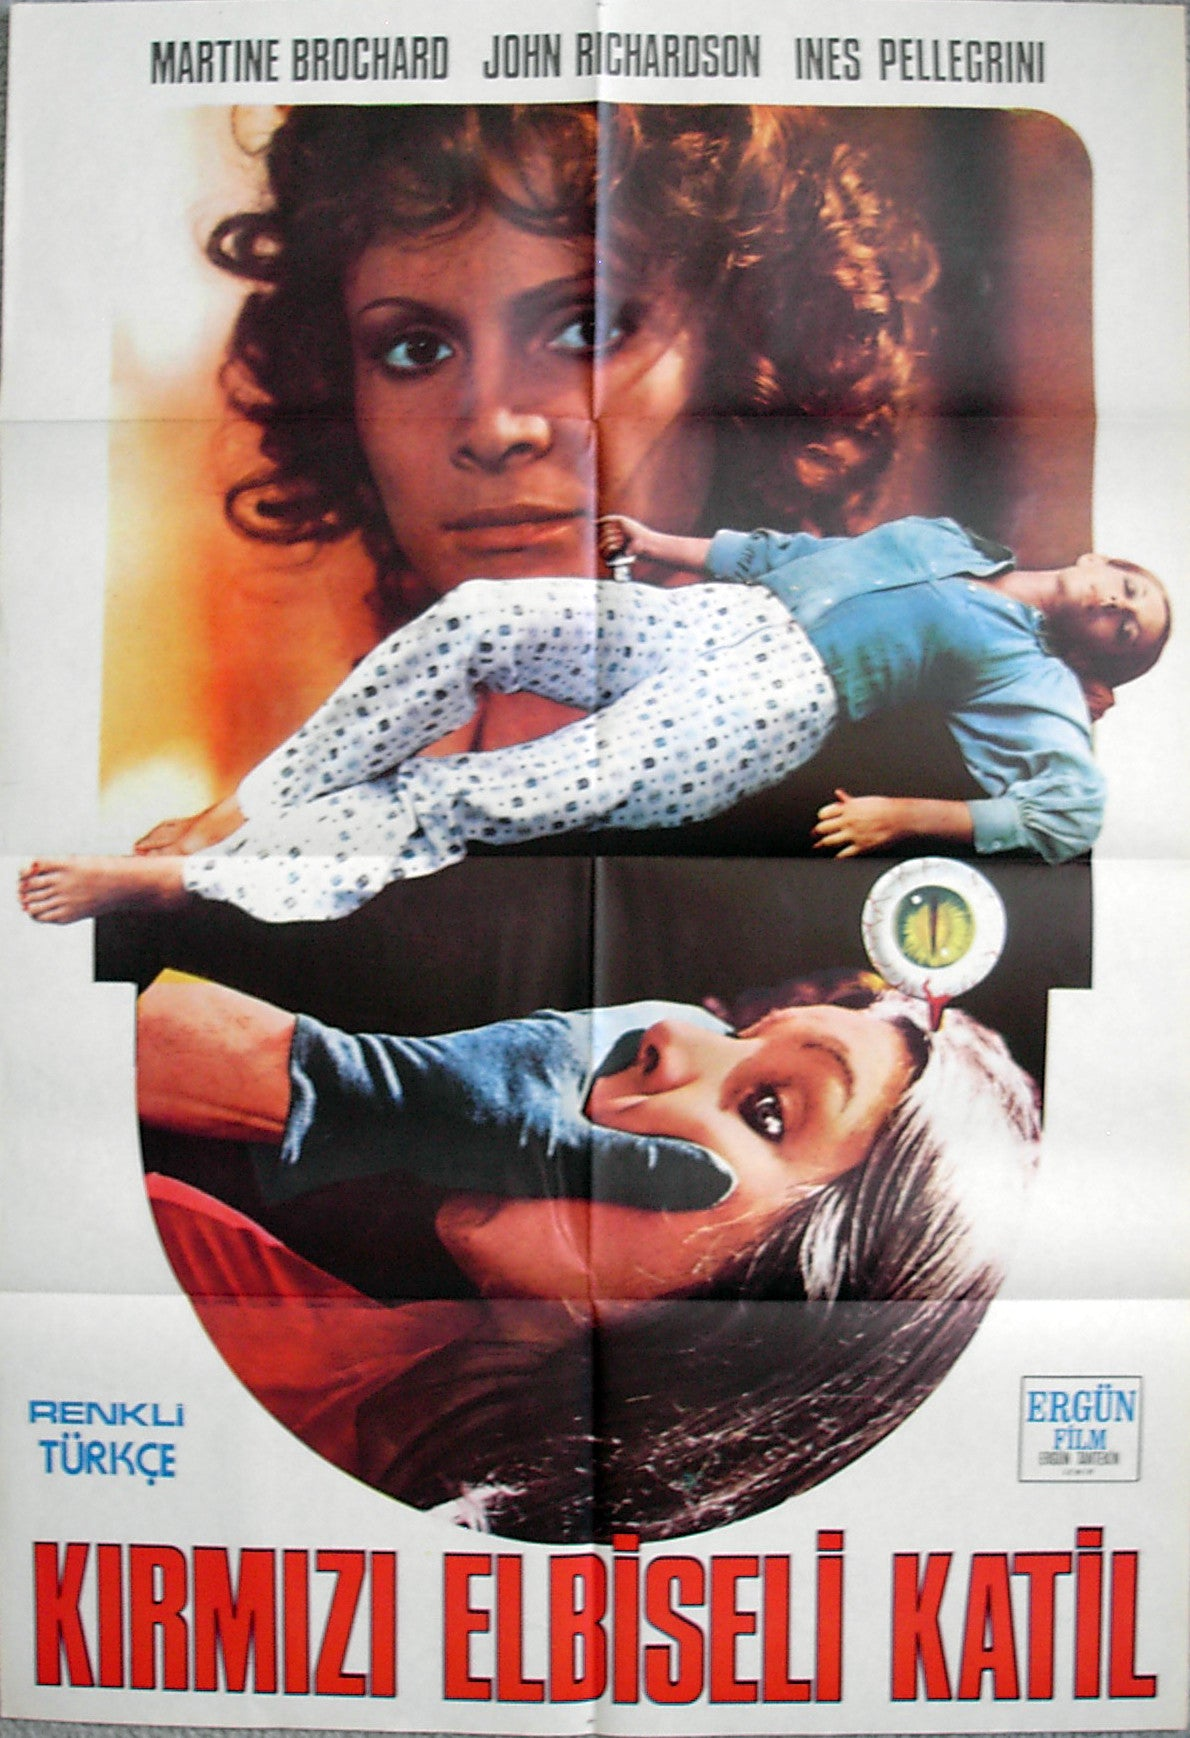 EYEBALL - Turkish poster